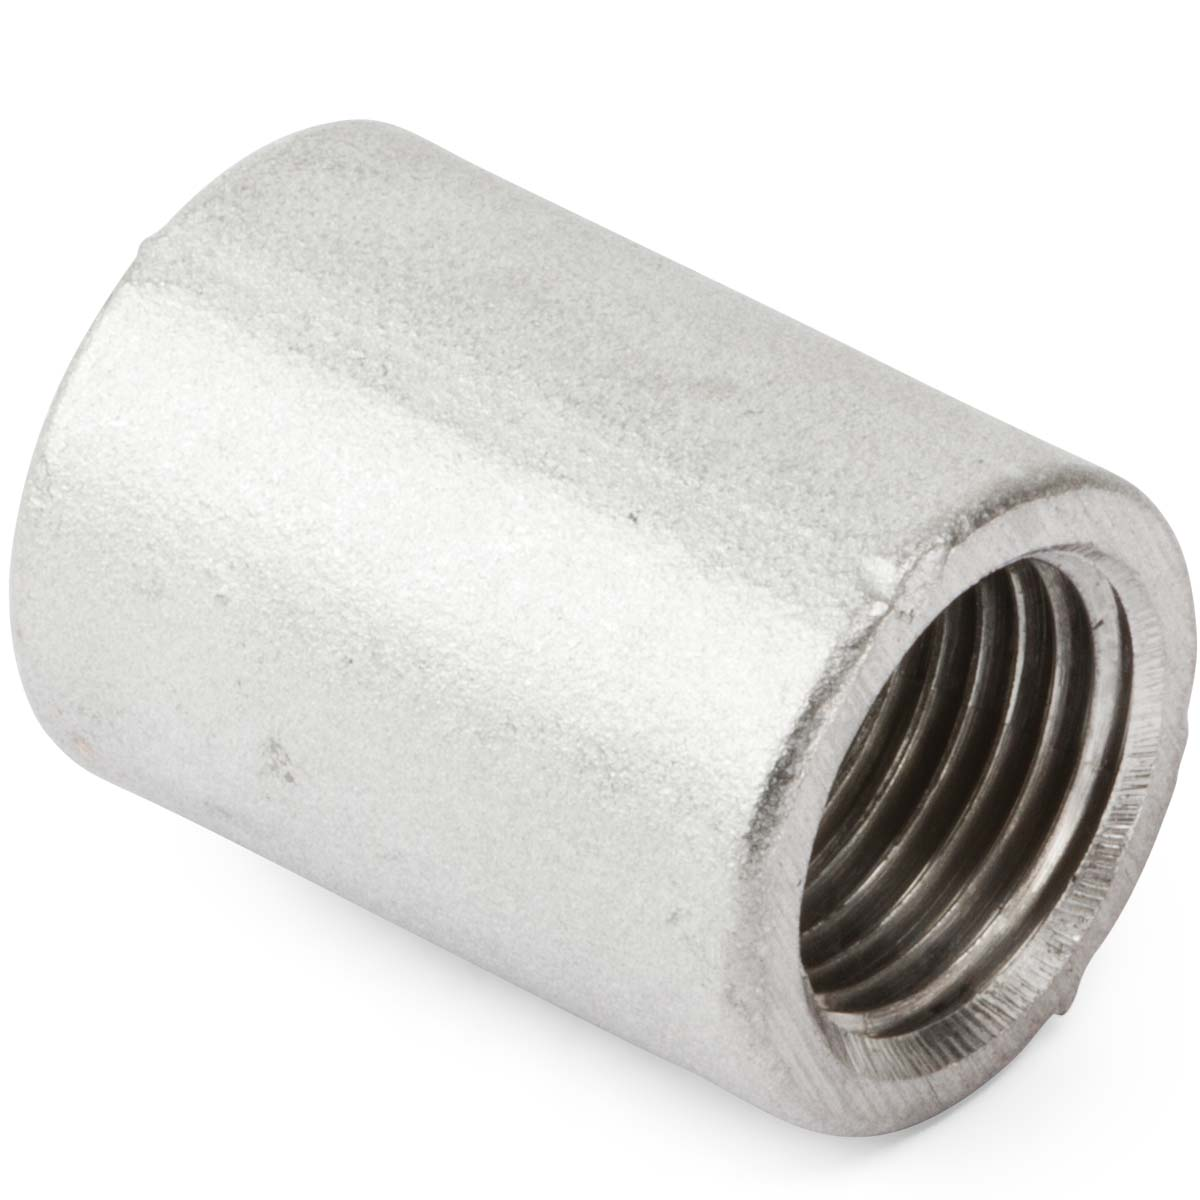 Stainless steel pipe coupling kimball midwest